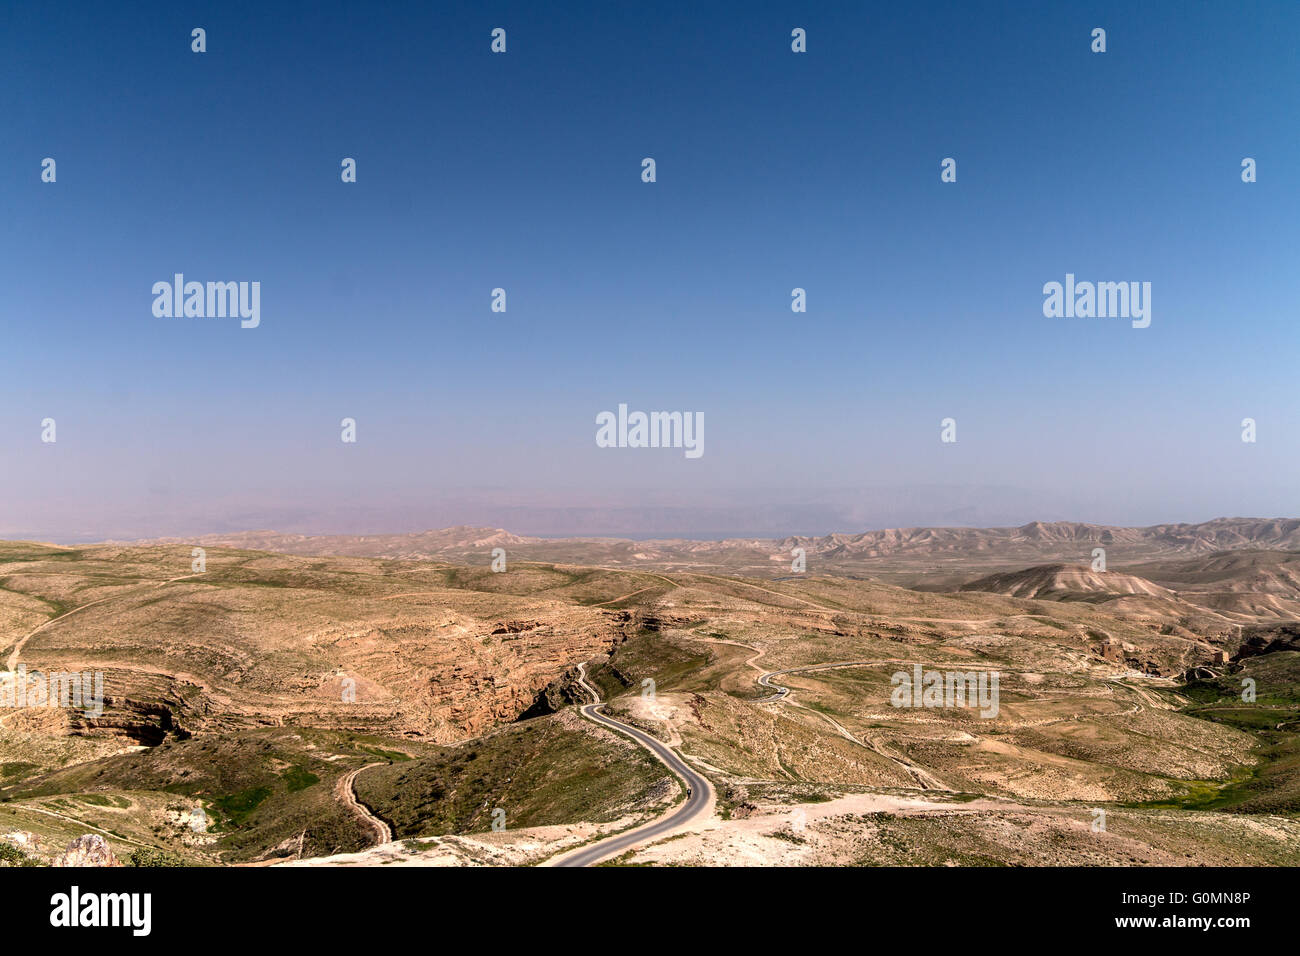 Judean Desert, Palestine. The Kidron Valley (gorge) left, the Dead Sea deep center and the Mar Saba monastery right. - Stock Image